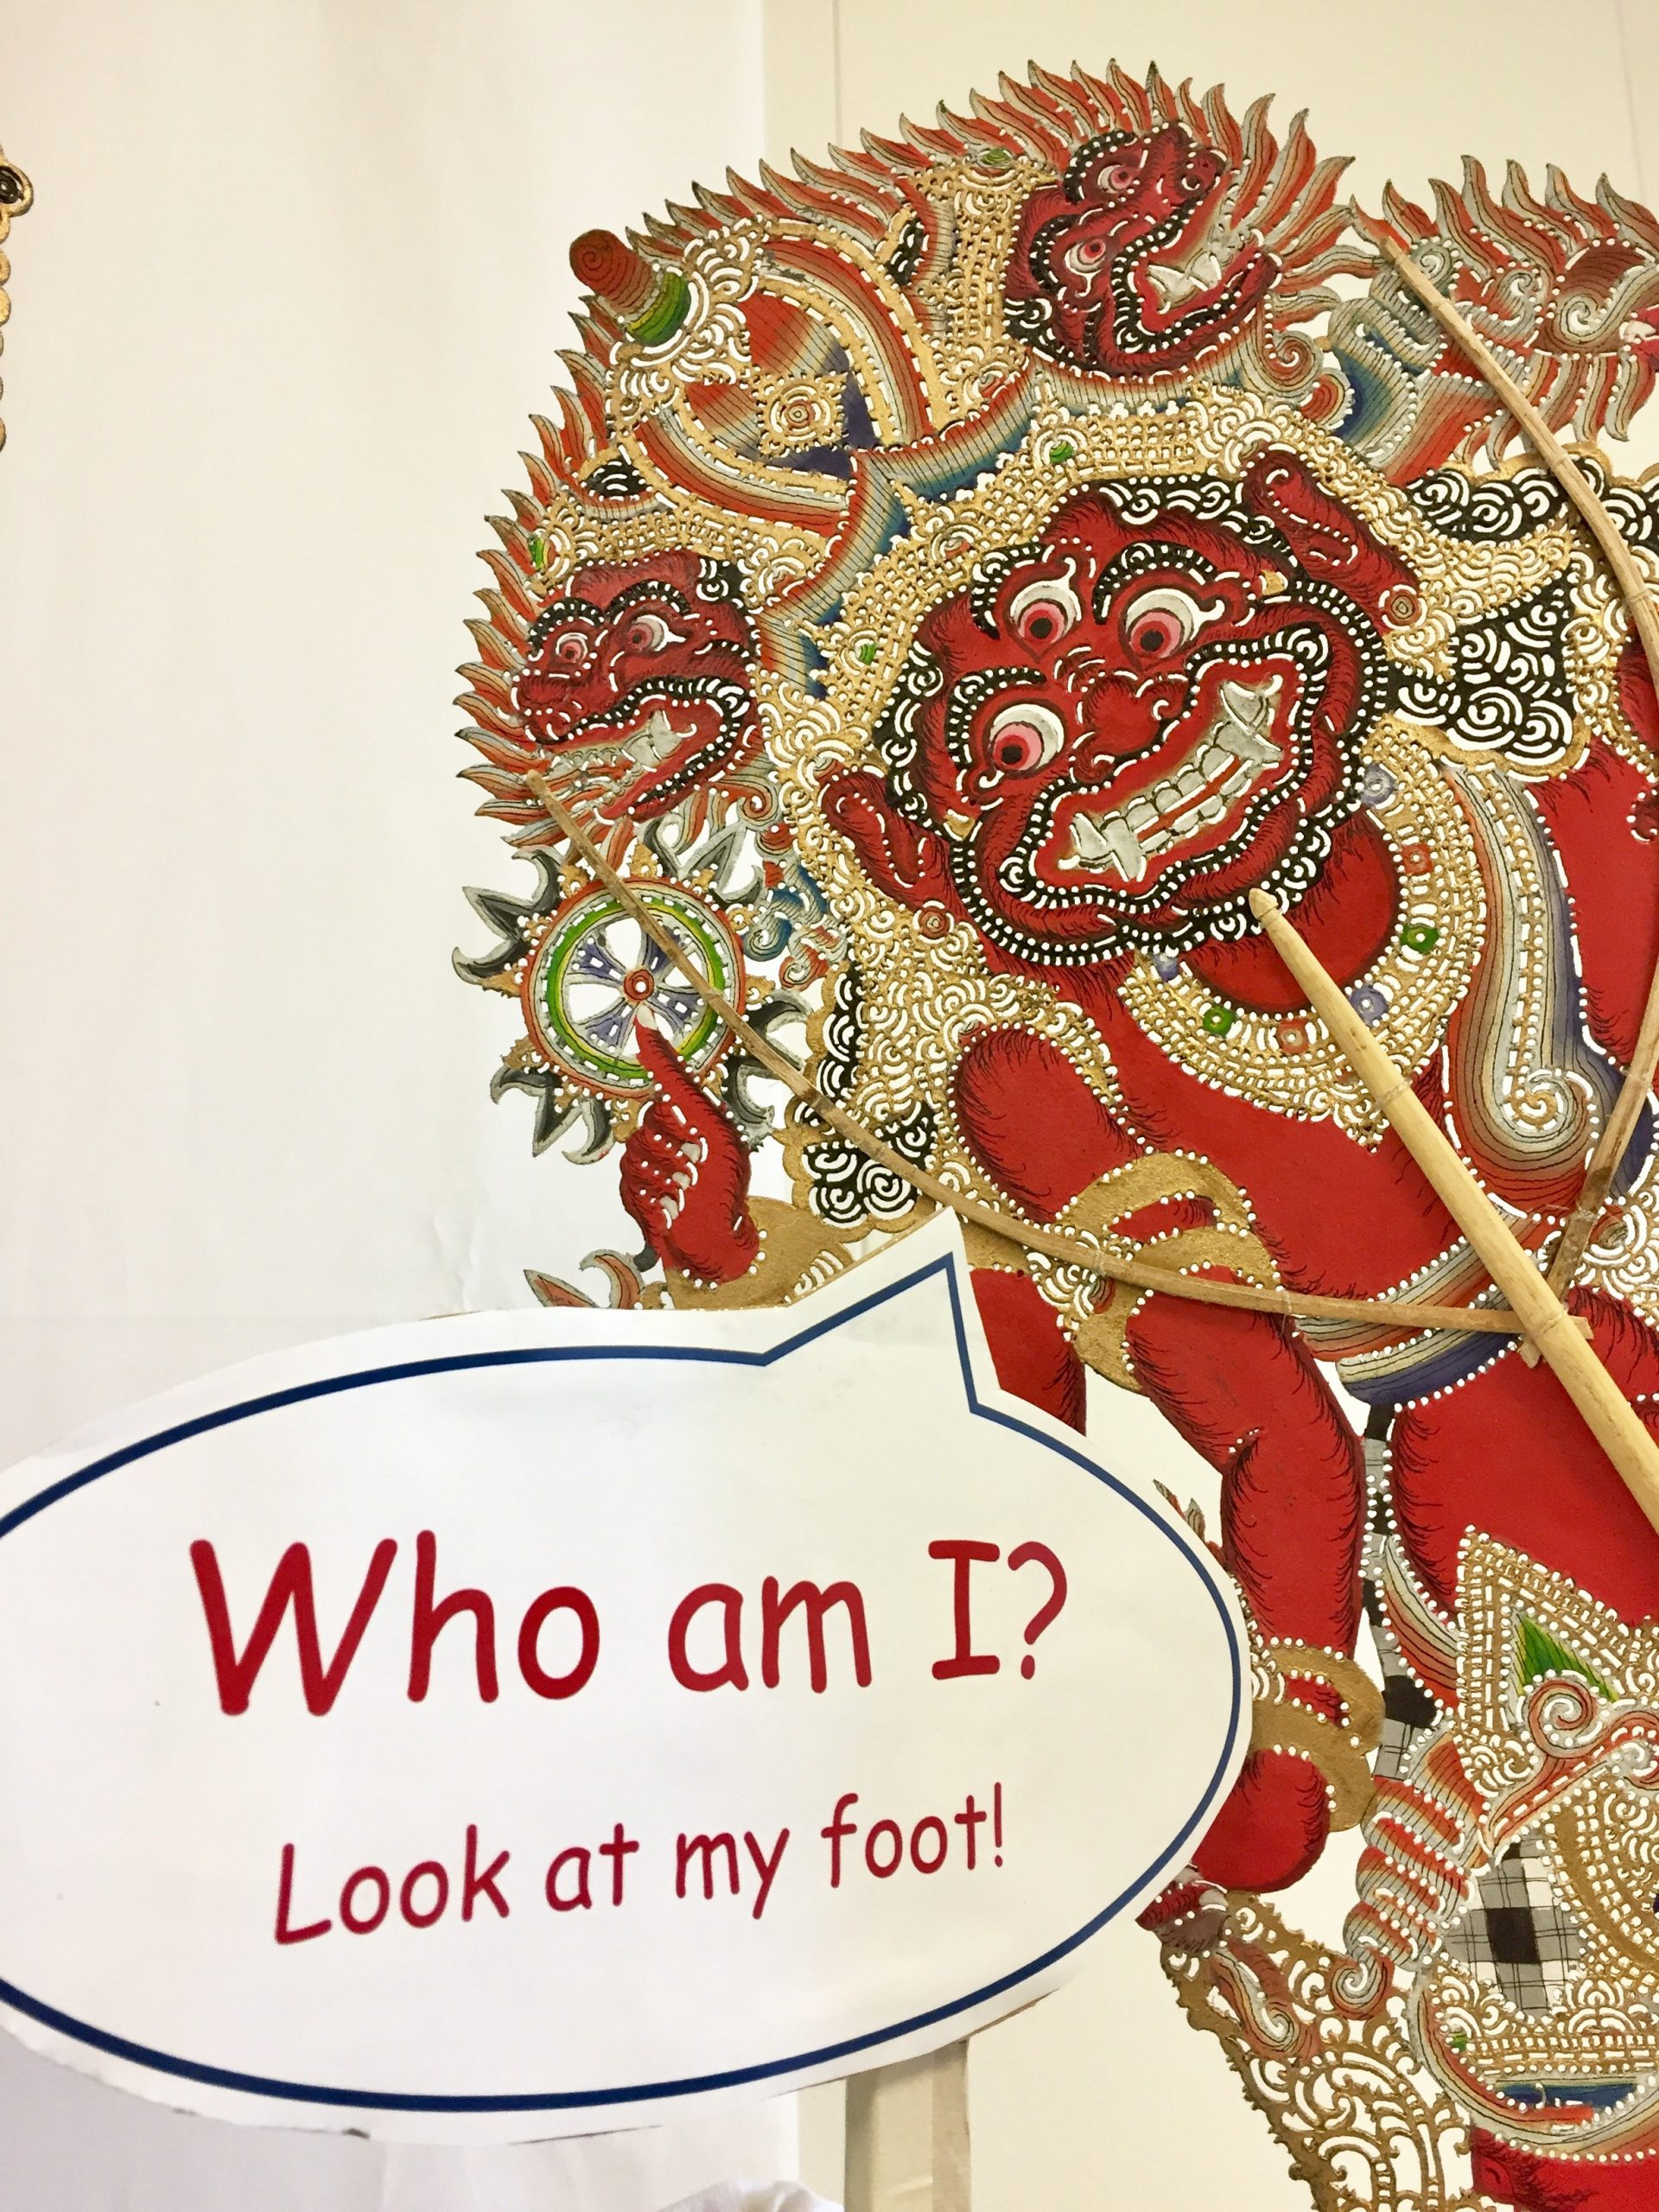 A shadow puppet with speech bubble Who am I? Look at my foot!